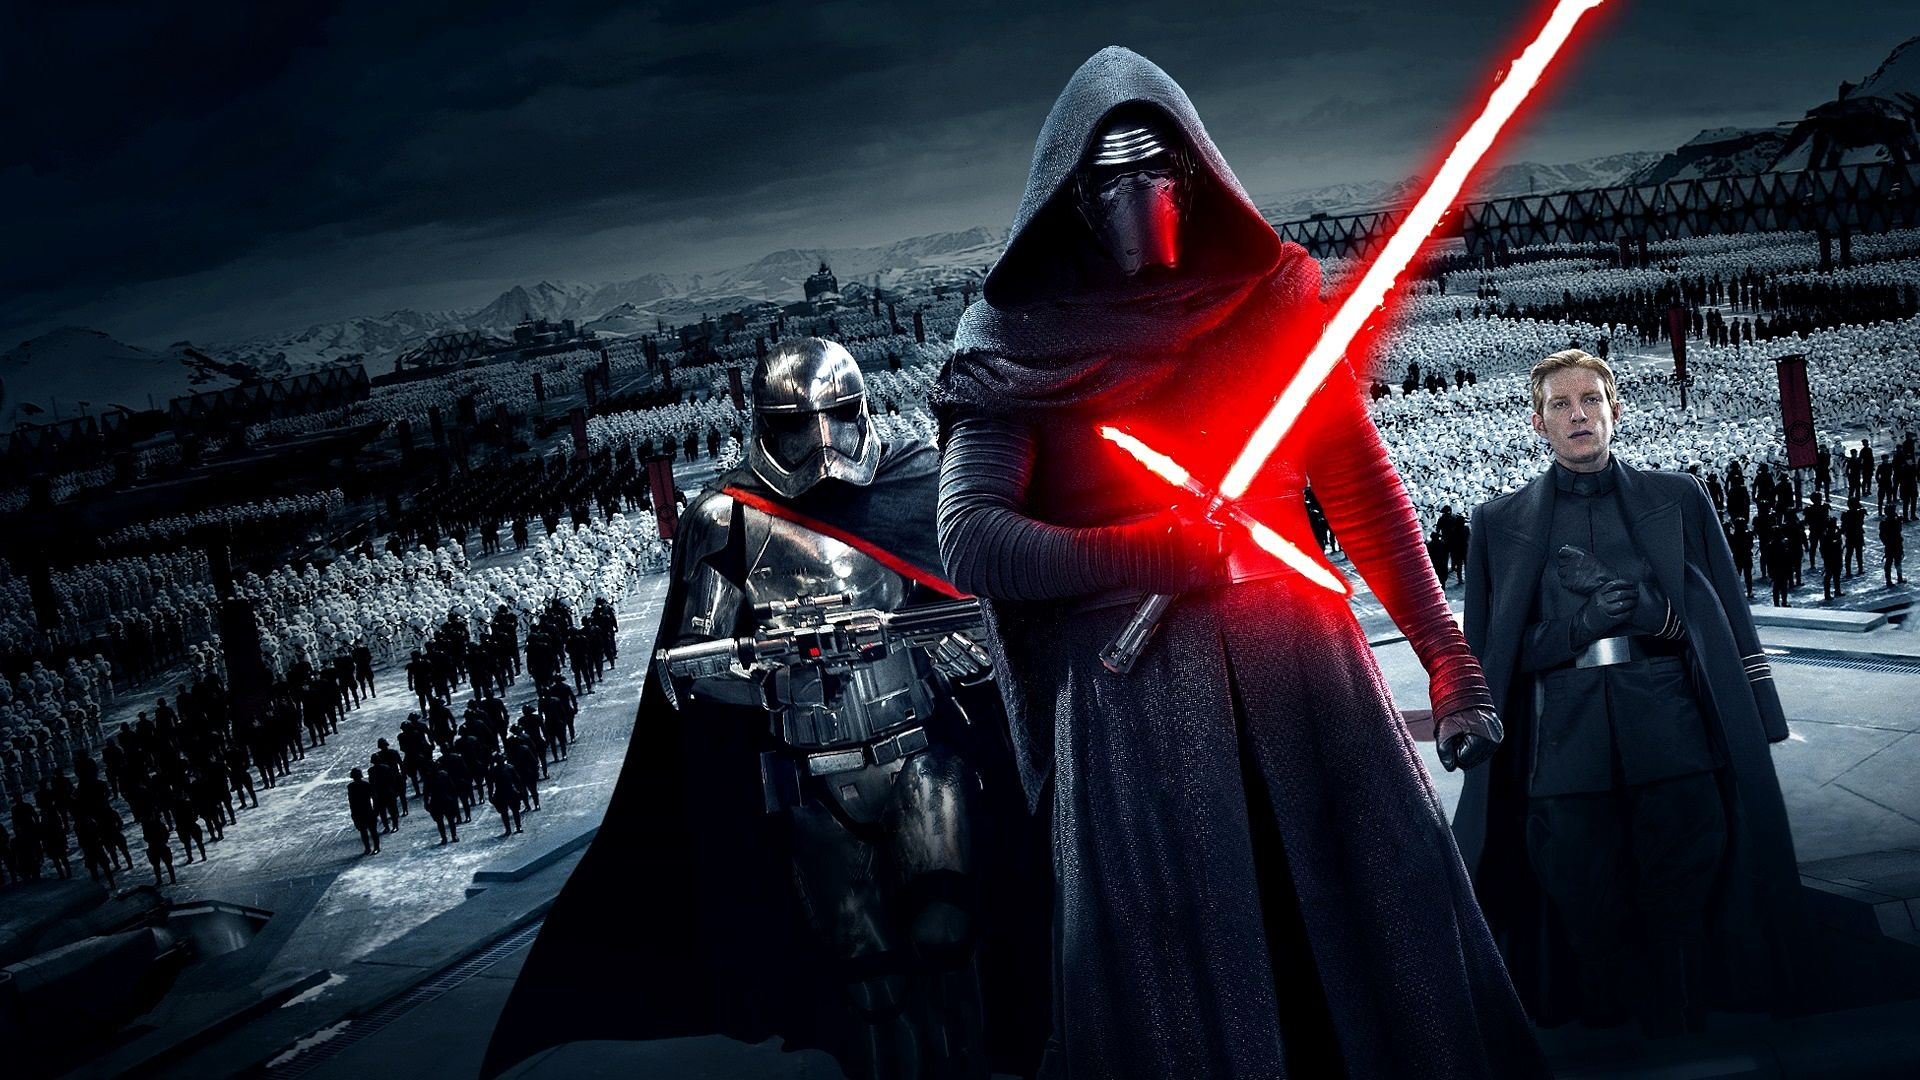 image star wars 7 the force awakens could kylo ren really be a